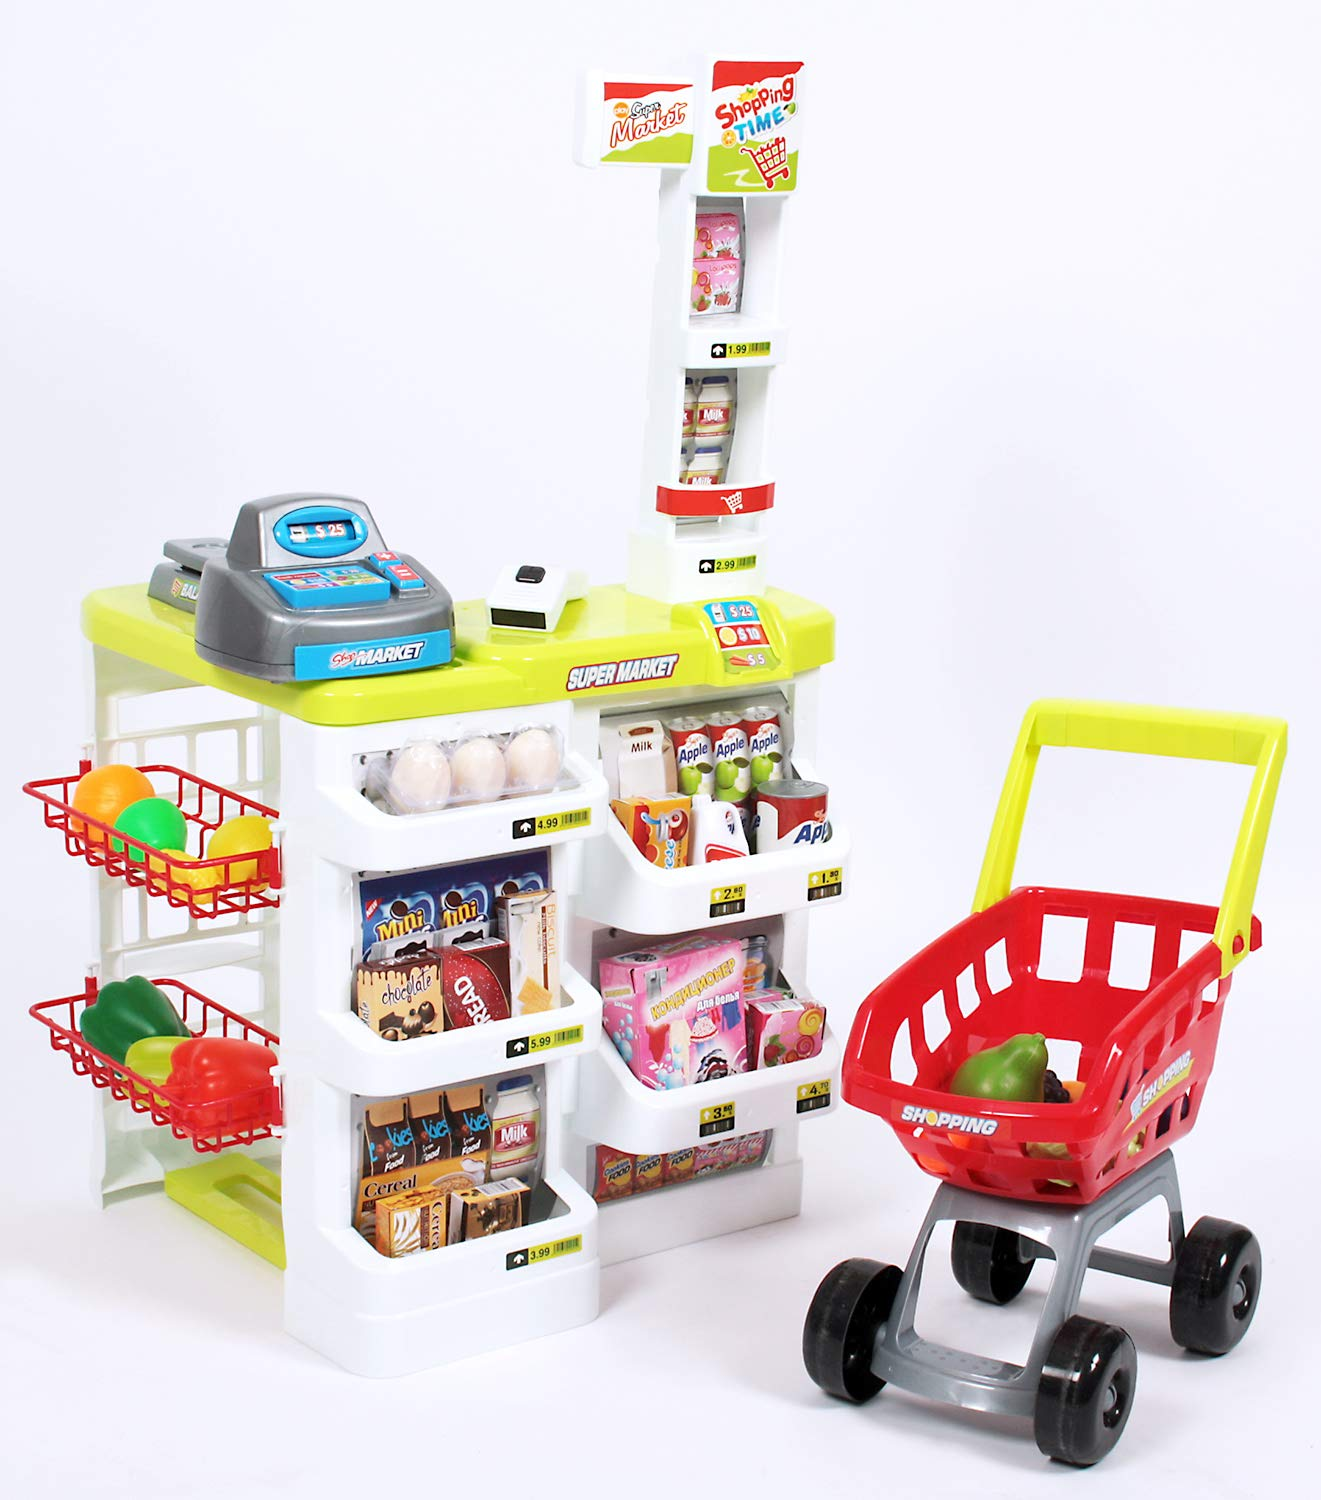 O.B Toys&Gift Deluxe Supermarket Toy Play Set for Kids - Grocery Store & Trolley w/ Working Scanner , Cash Register & Shopping Cart , Kids Pretend Play Grocery by O.B Toys&Gift